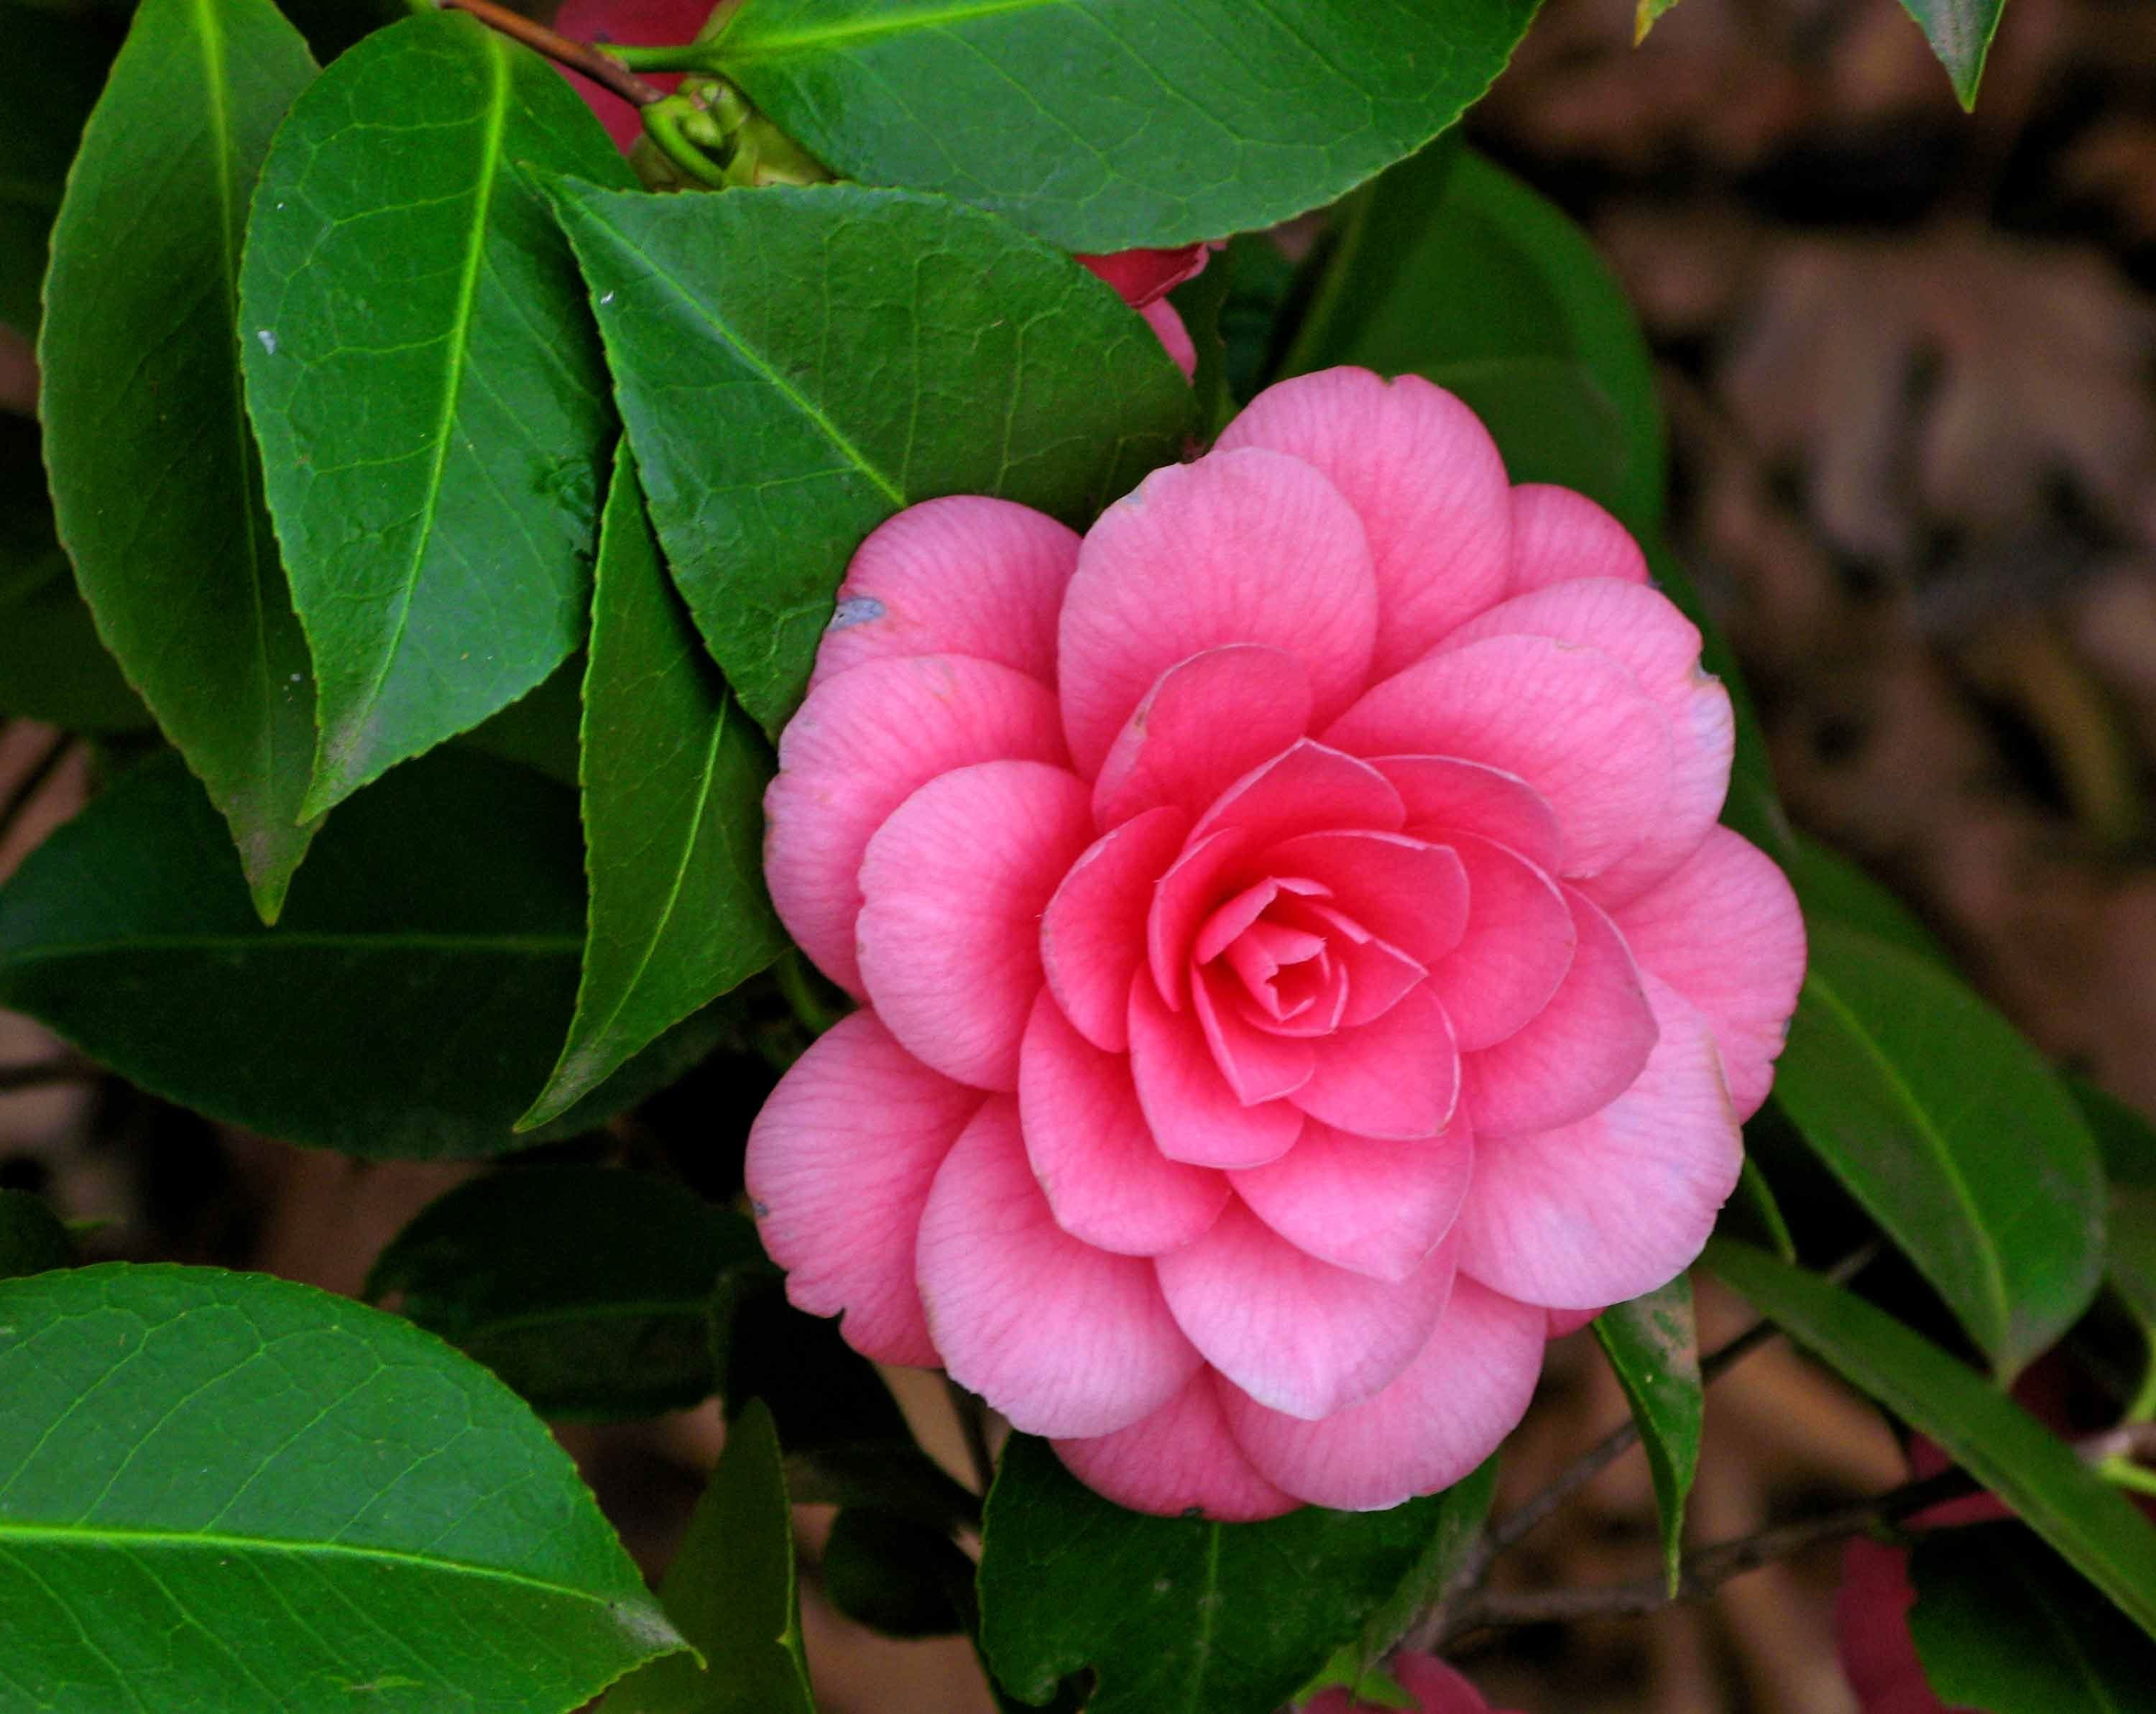 Camellia flower is a broadleaf woody plant native to South